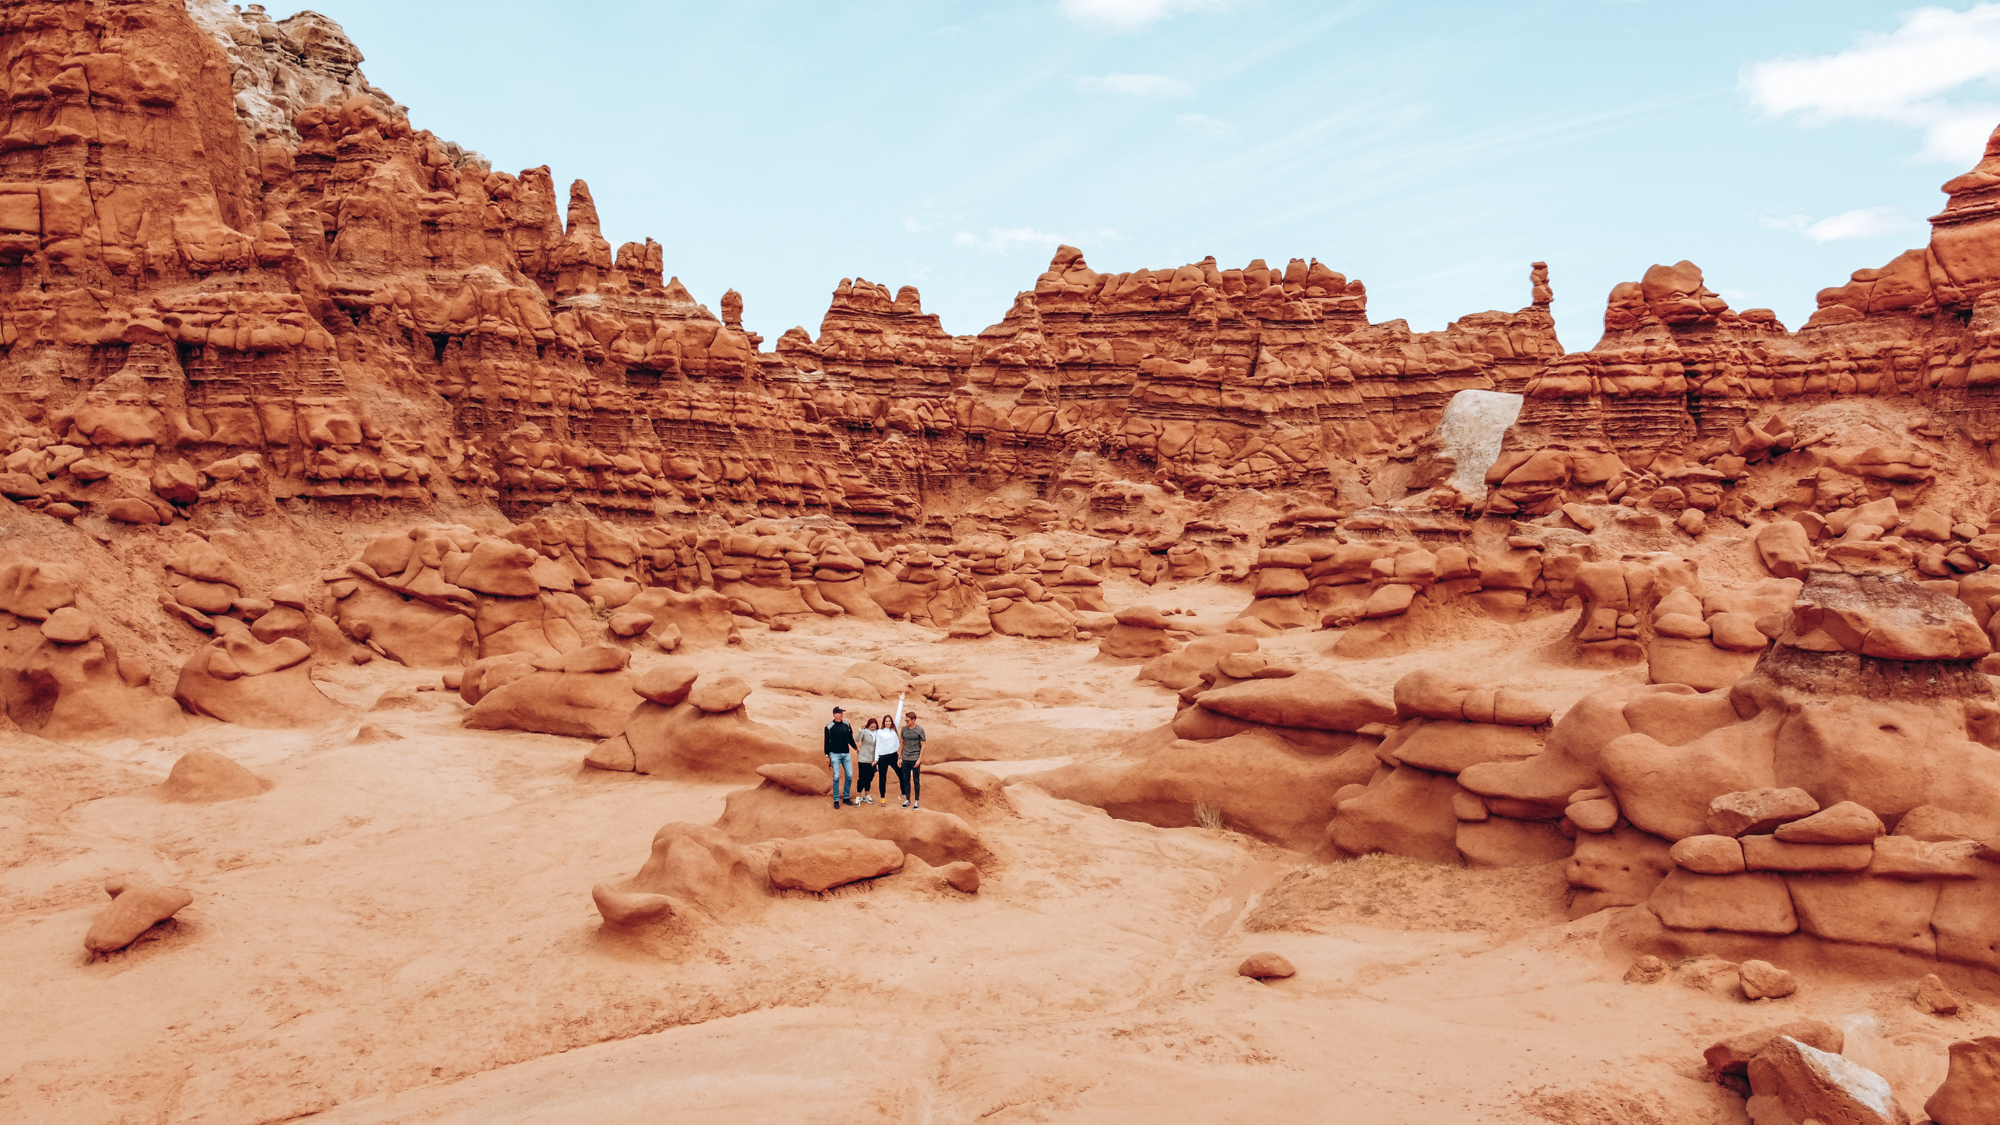 Four people can be seen in the foreground of an image with red rocks and cliffs!